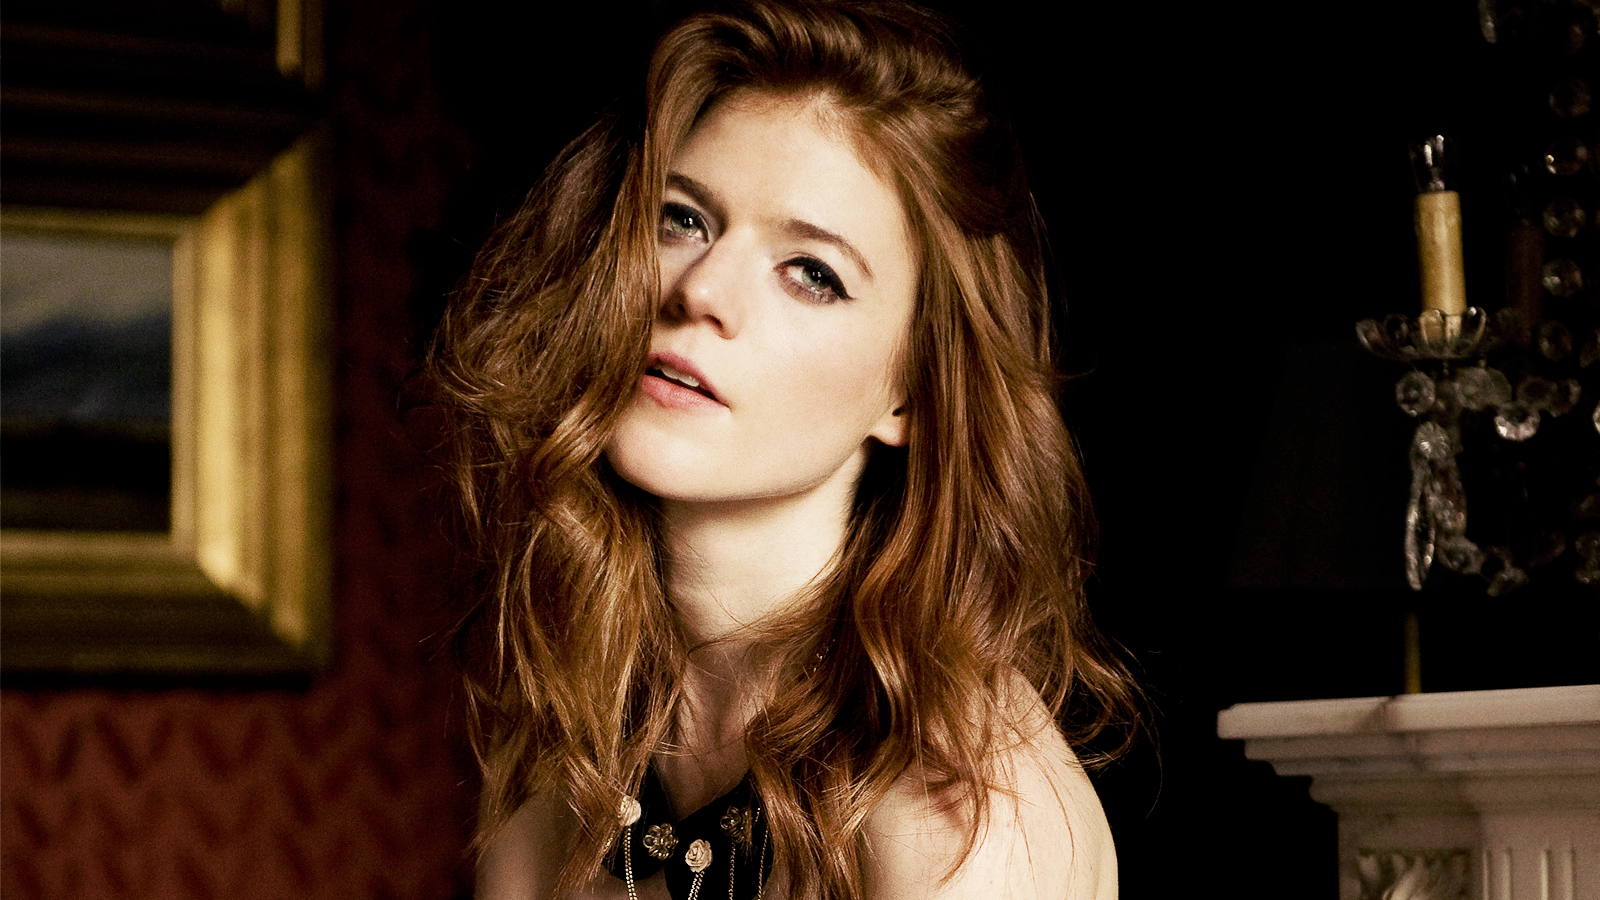 rose leslie wallpaper 5 - photo #36